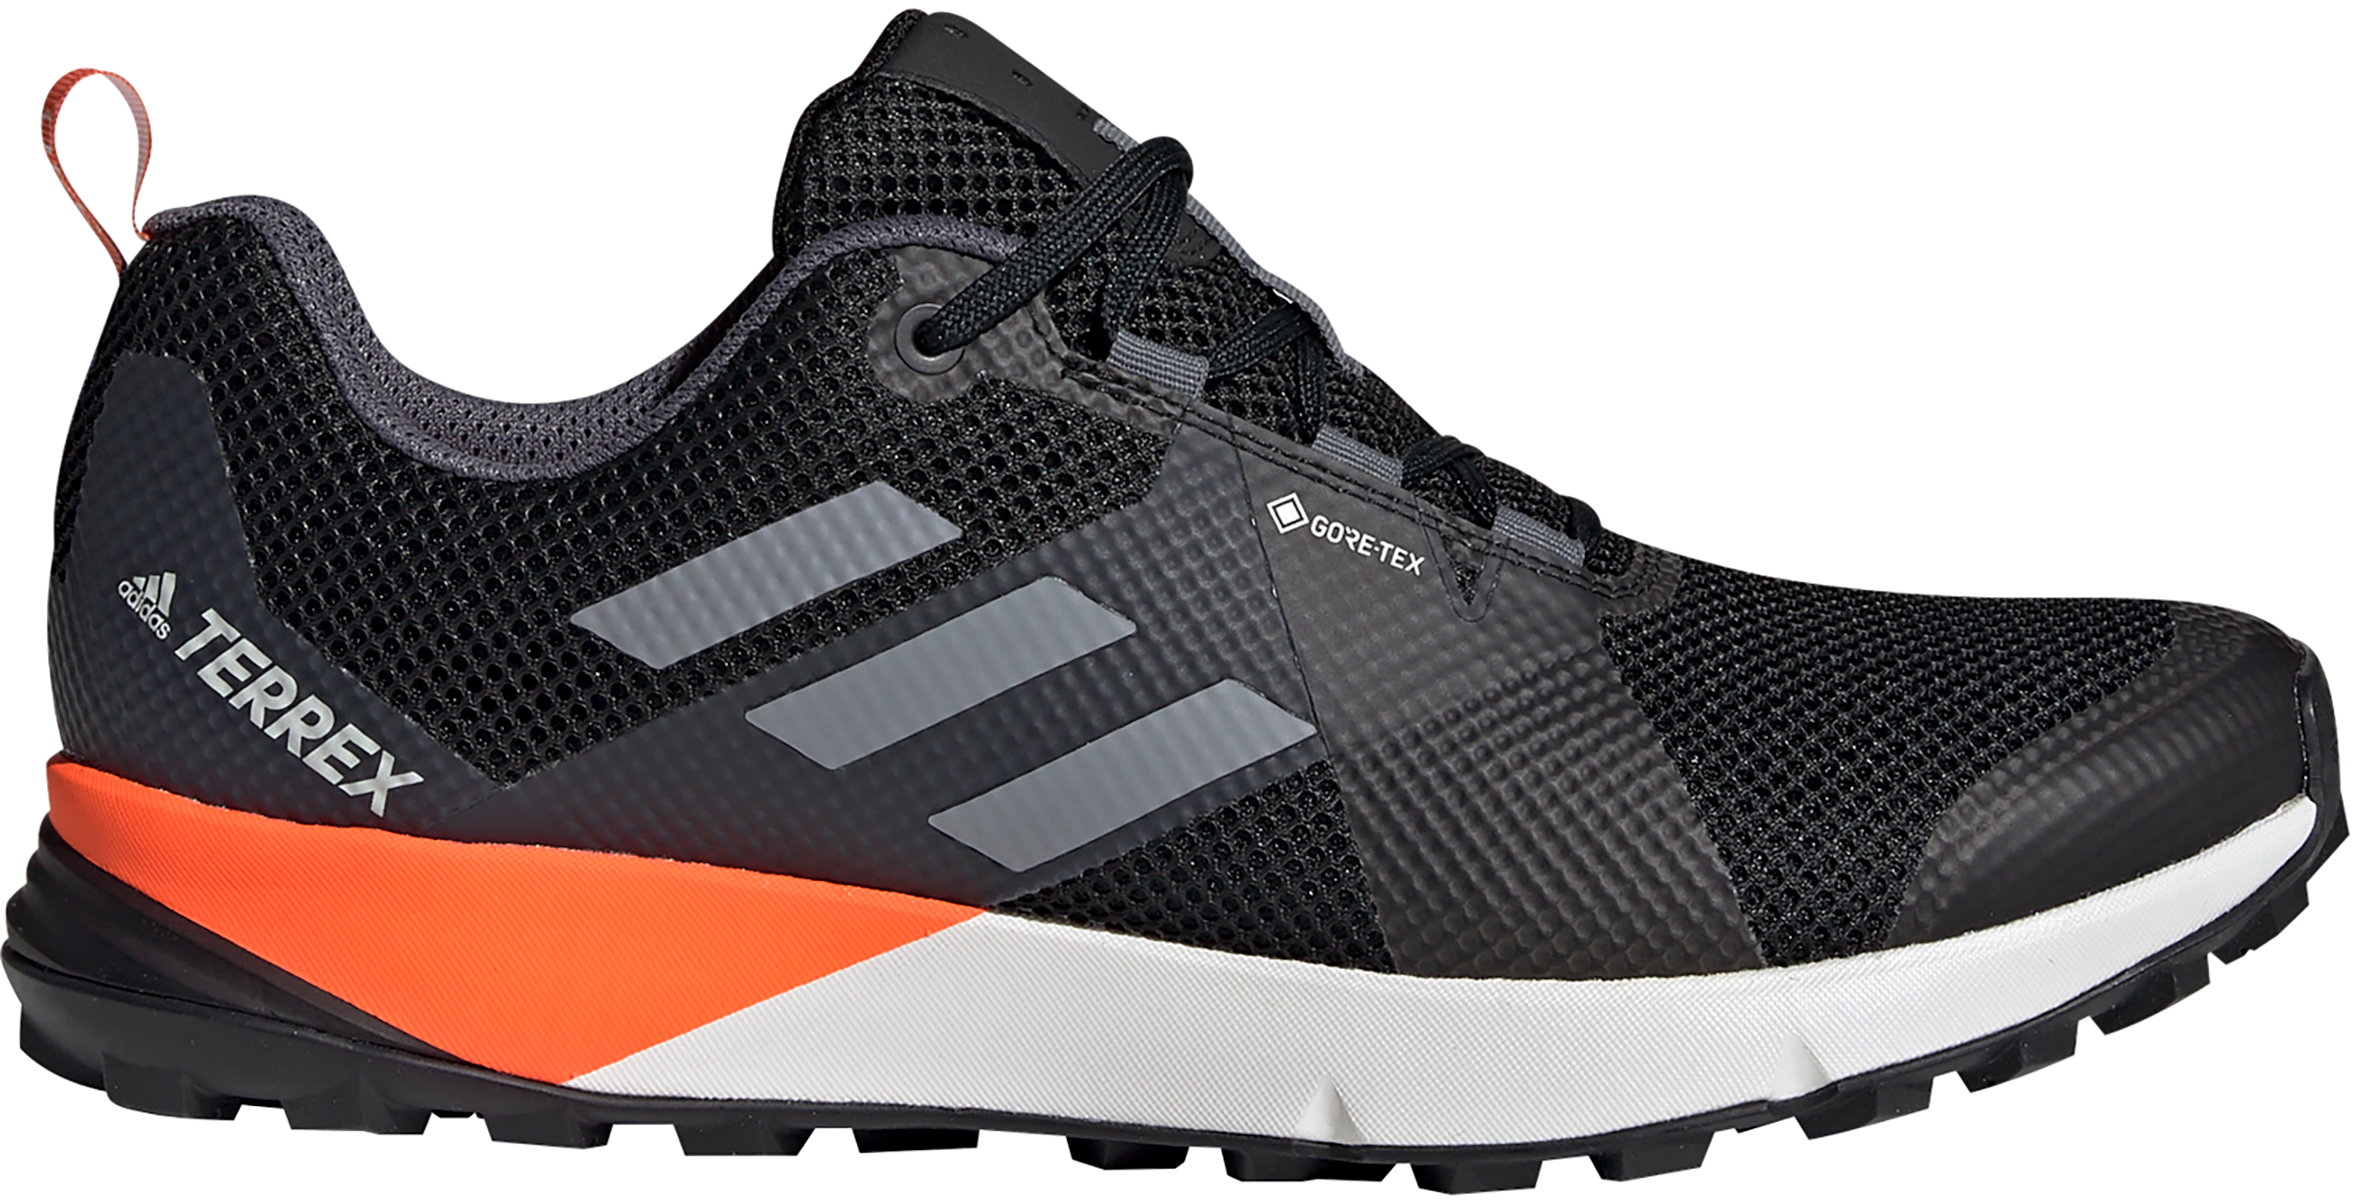 adidas Terrex Two GTX Shoes